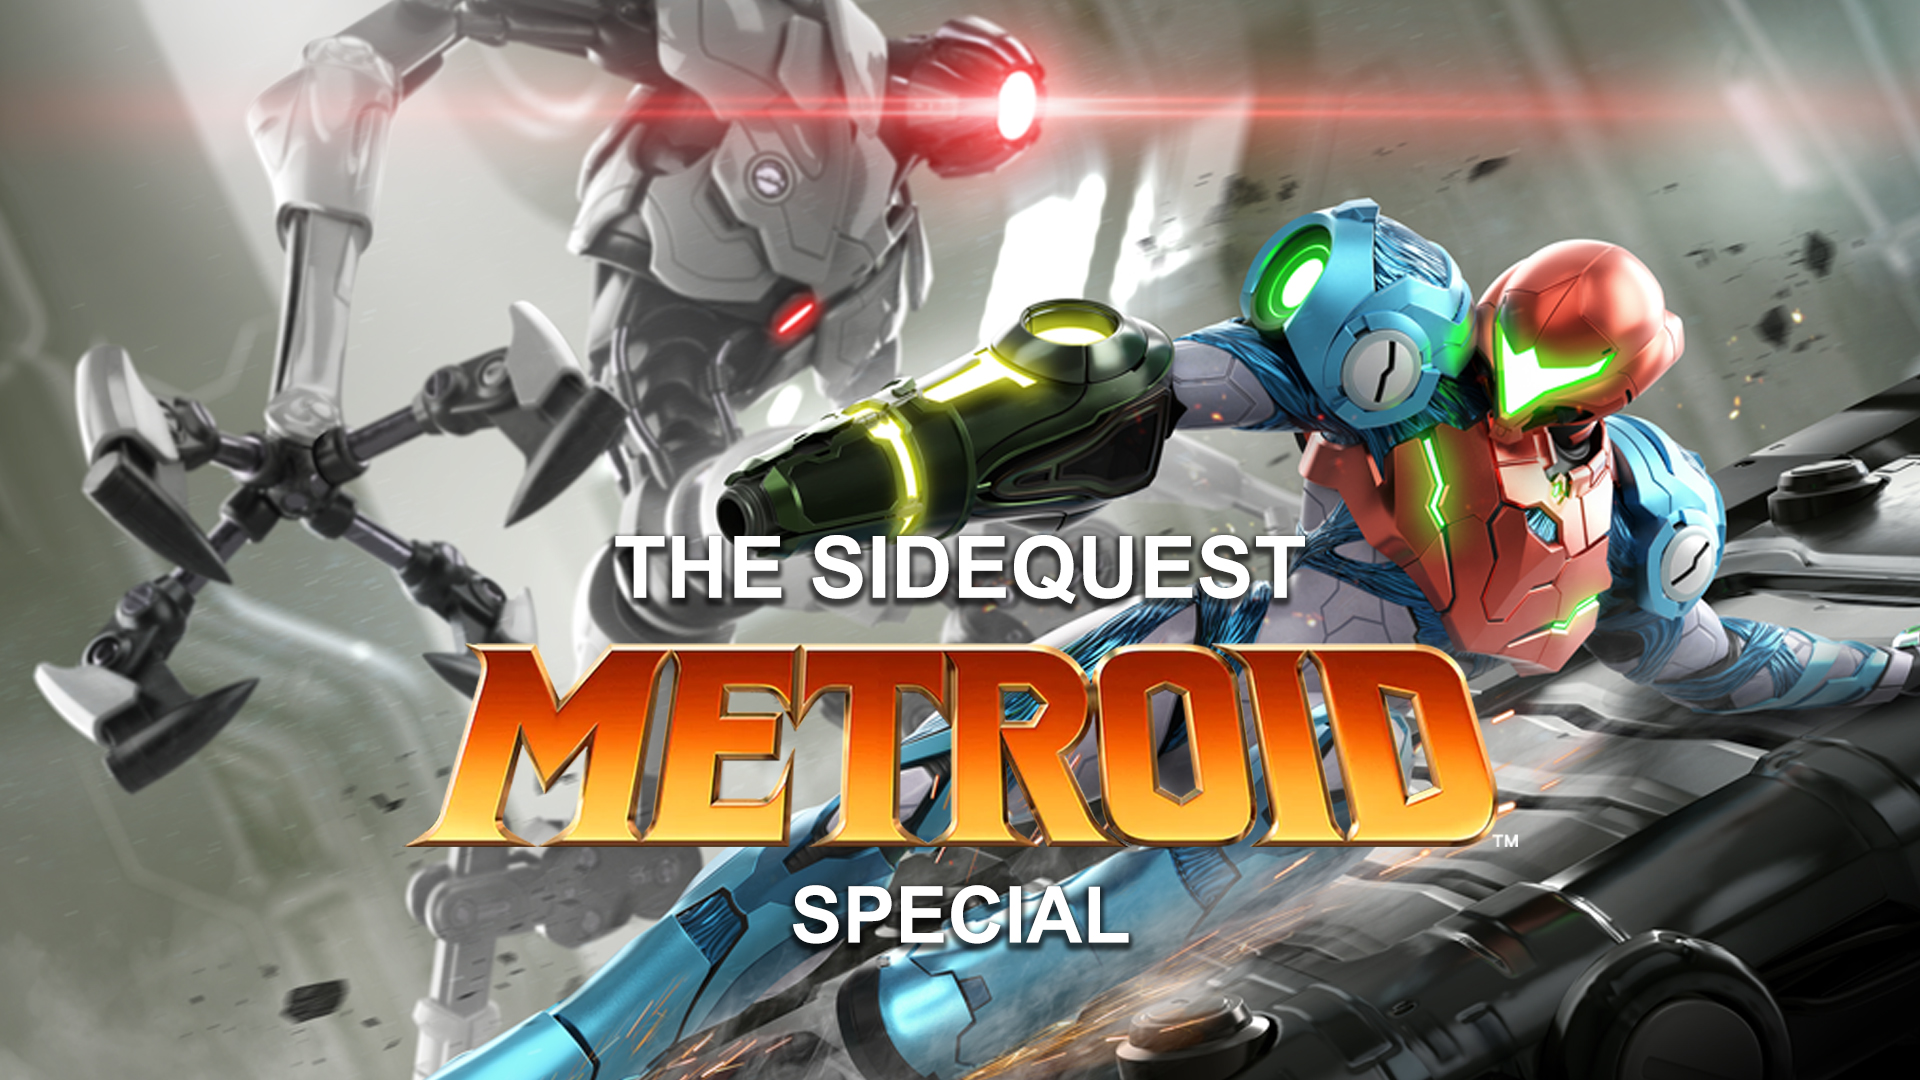 The SideQuest: METROID SPECIAL